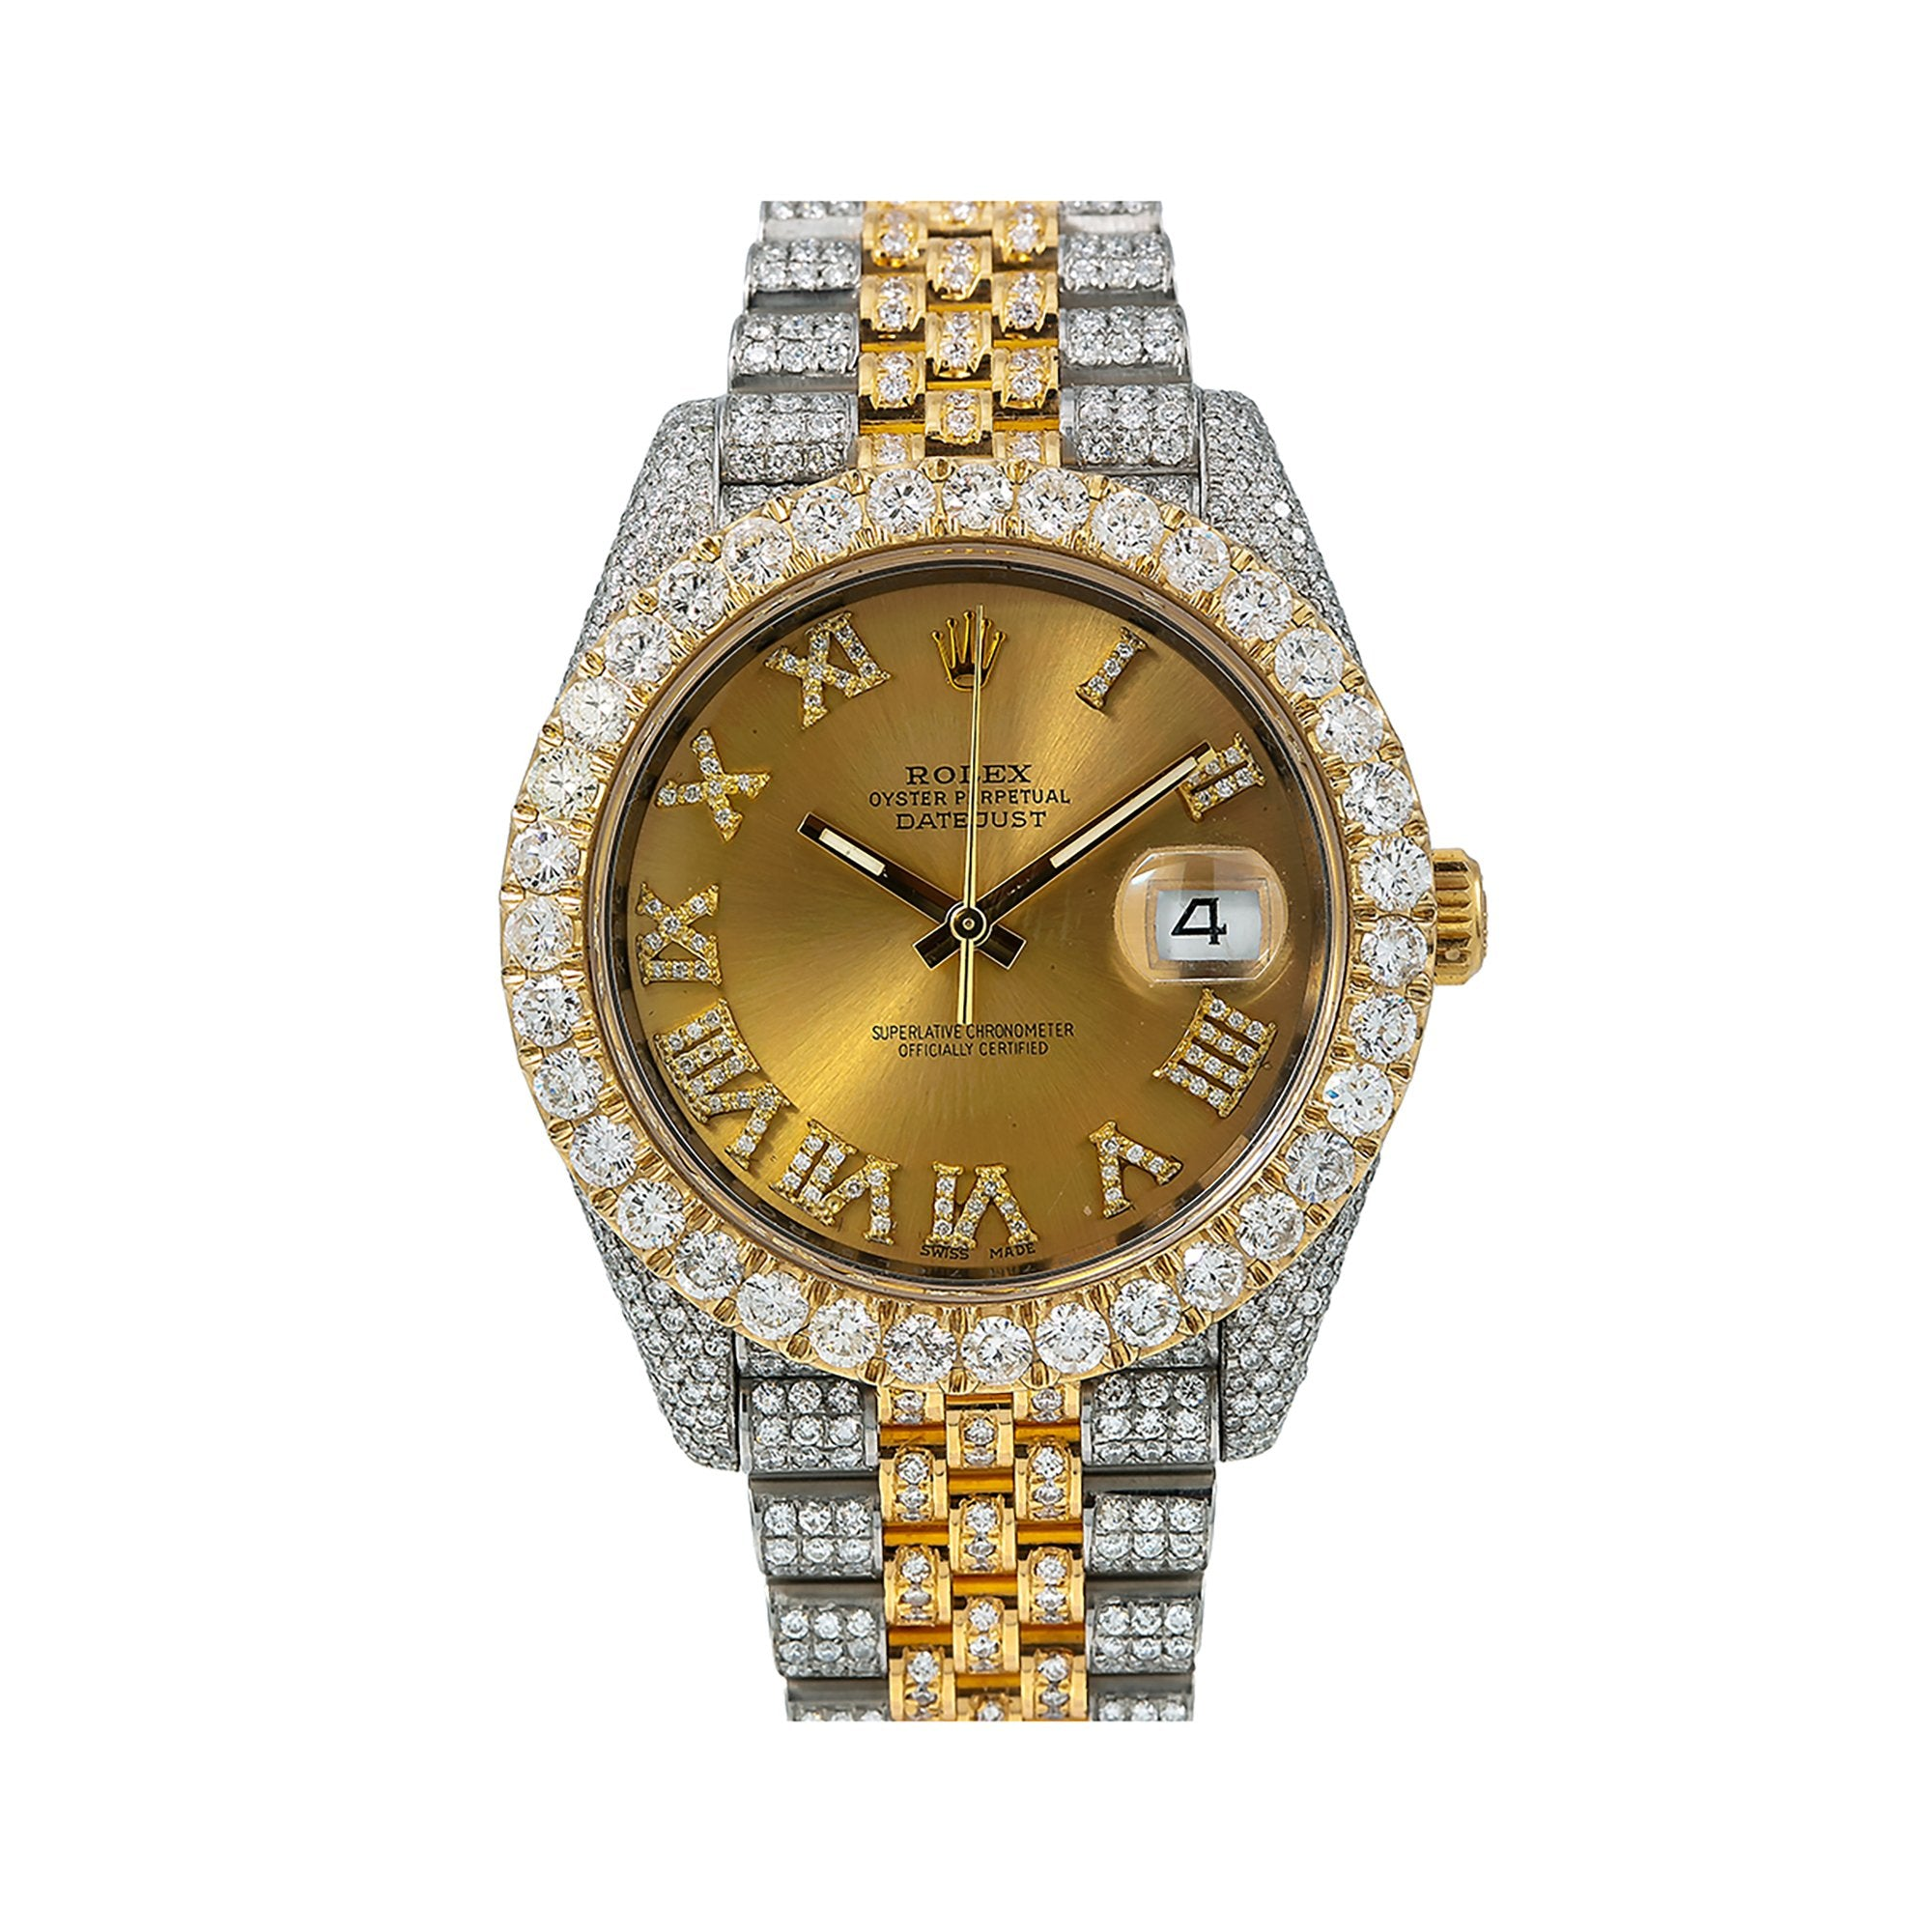 Rolex Datejust Diamond Watch, 126333 41mm, Champagne Diamond Dial With Stainless Steel Jubilee Bracelet